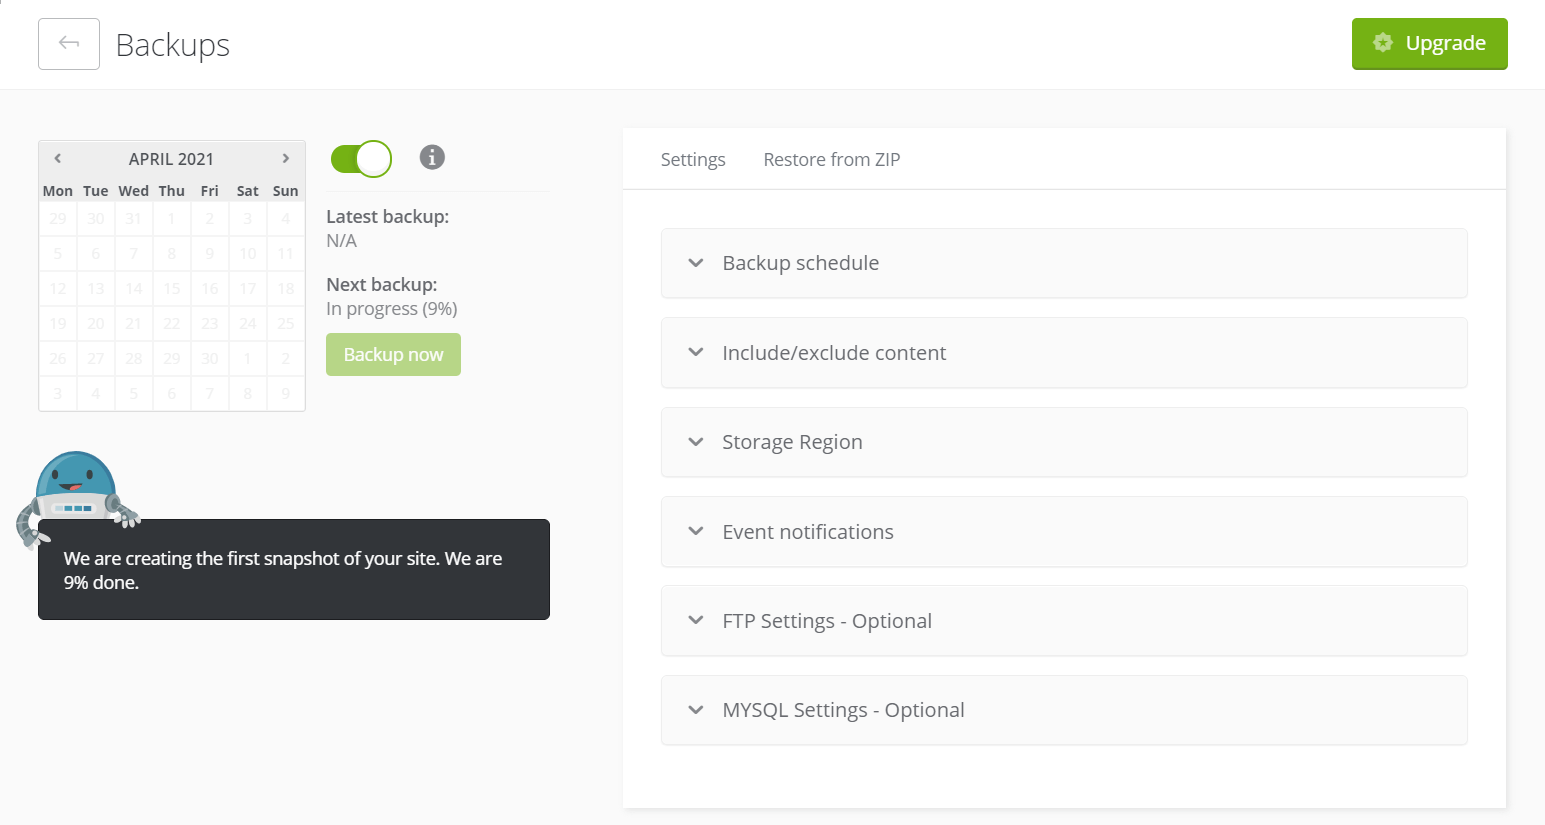 ManageWP's backup feature page, an essential step for changing your WordPress theme safely.